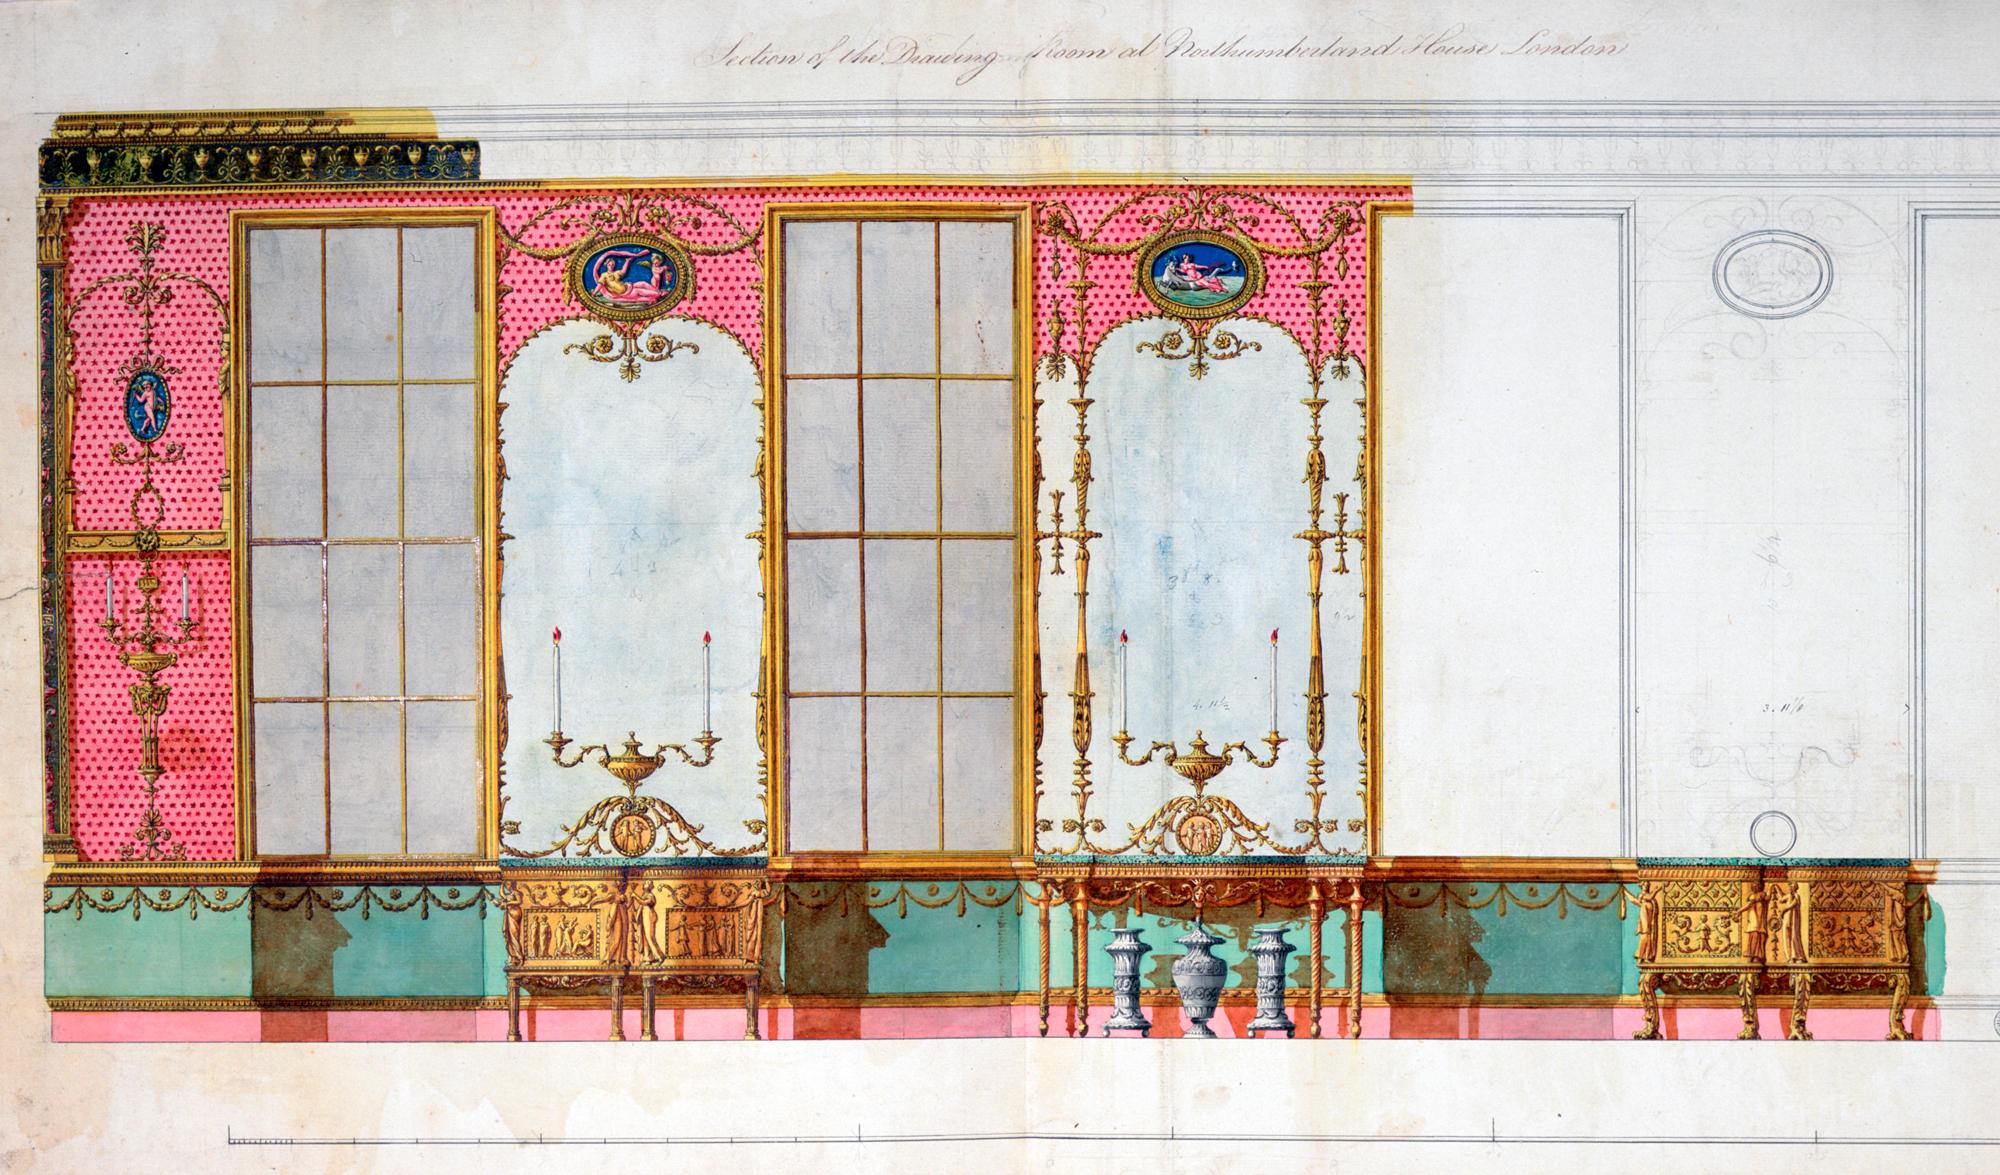 Design drawing of the Northumberland glass drawing room with pink and green walls and pencil sketches.